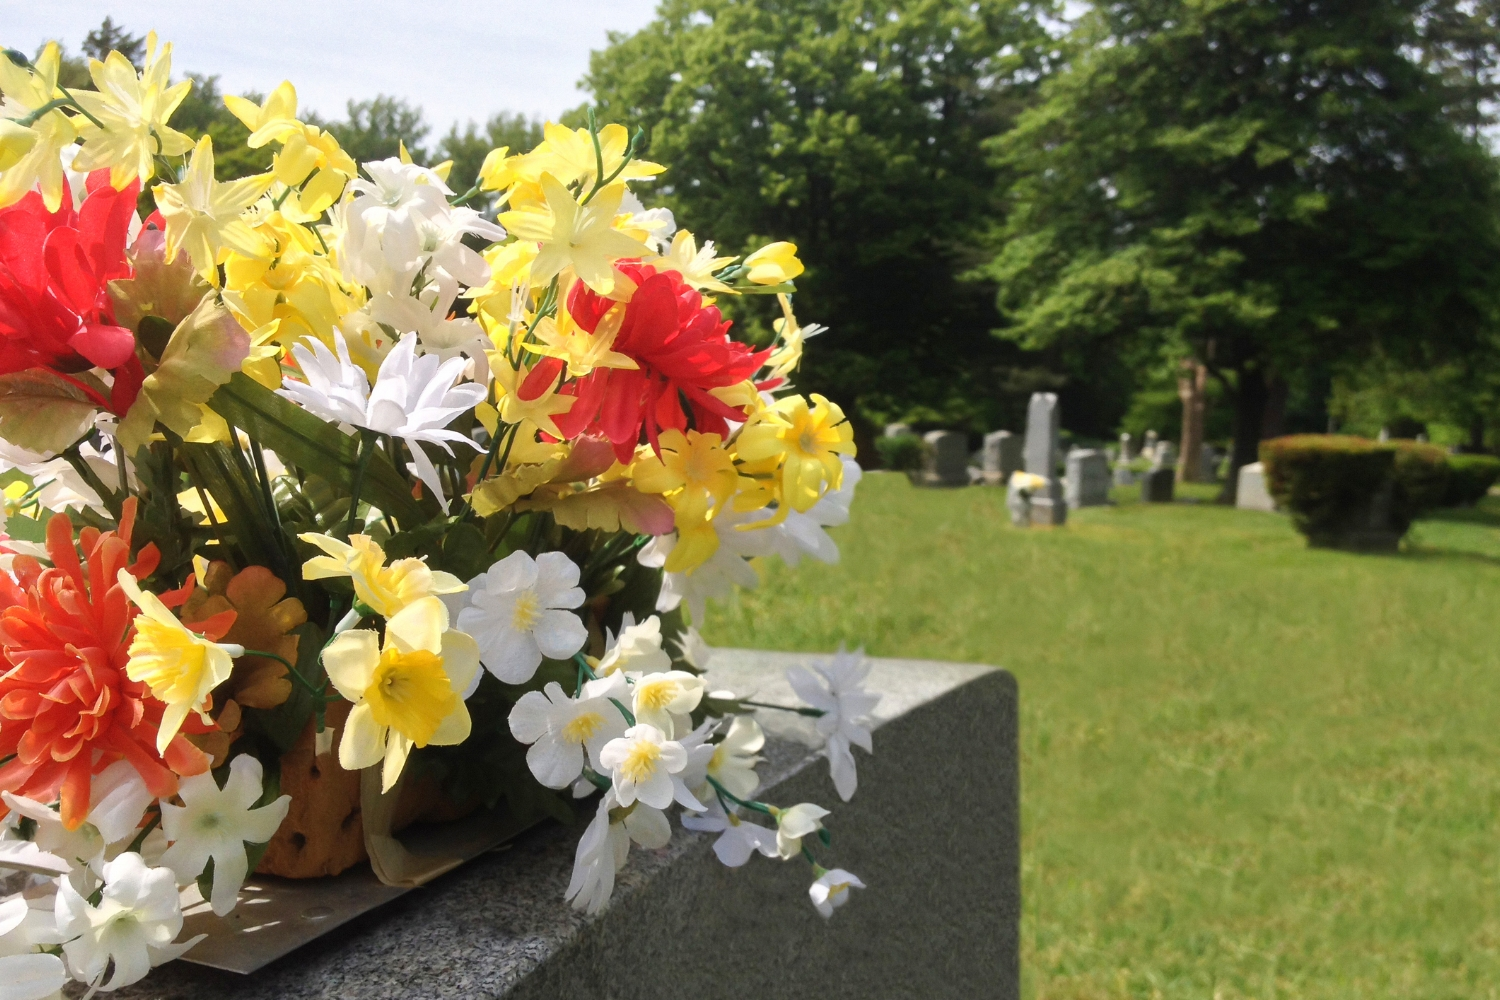 Flowers-on-Top-a-Tombstone-with-Cemetery-in-Background-496584275_2122x1414.jpeg